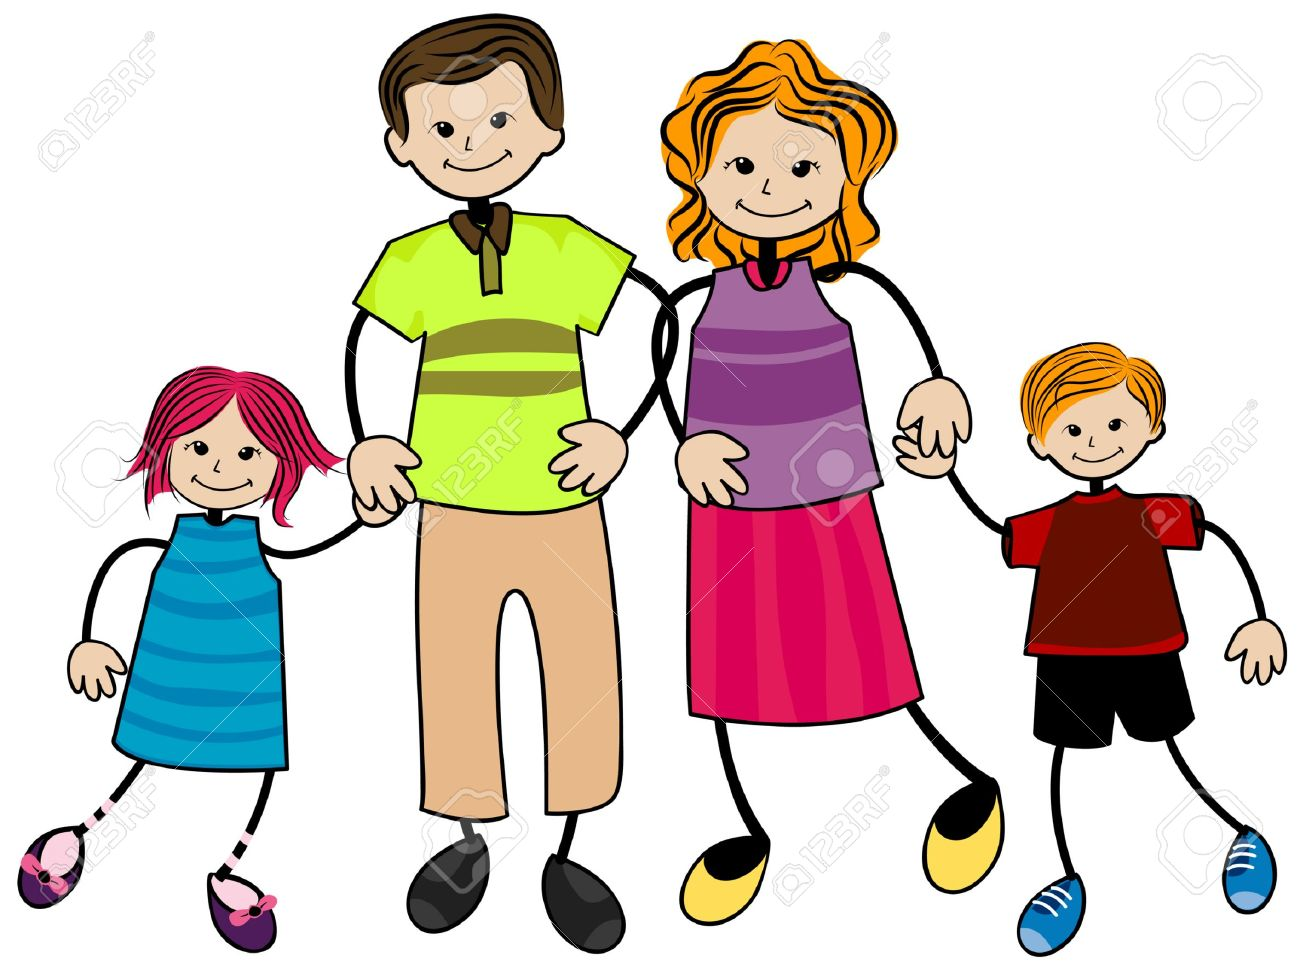 Clip art free printable. Family clipart